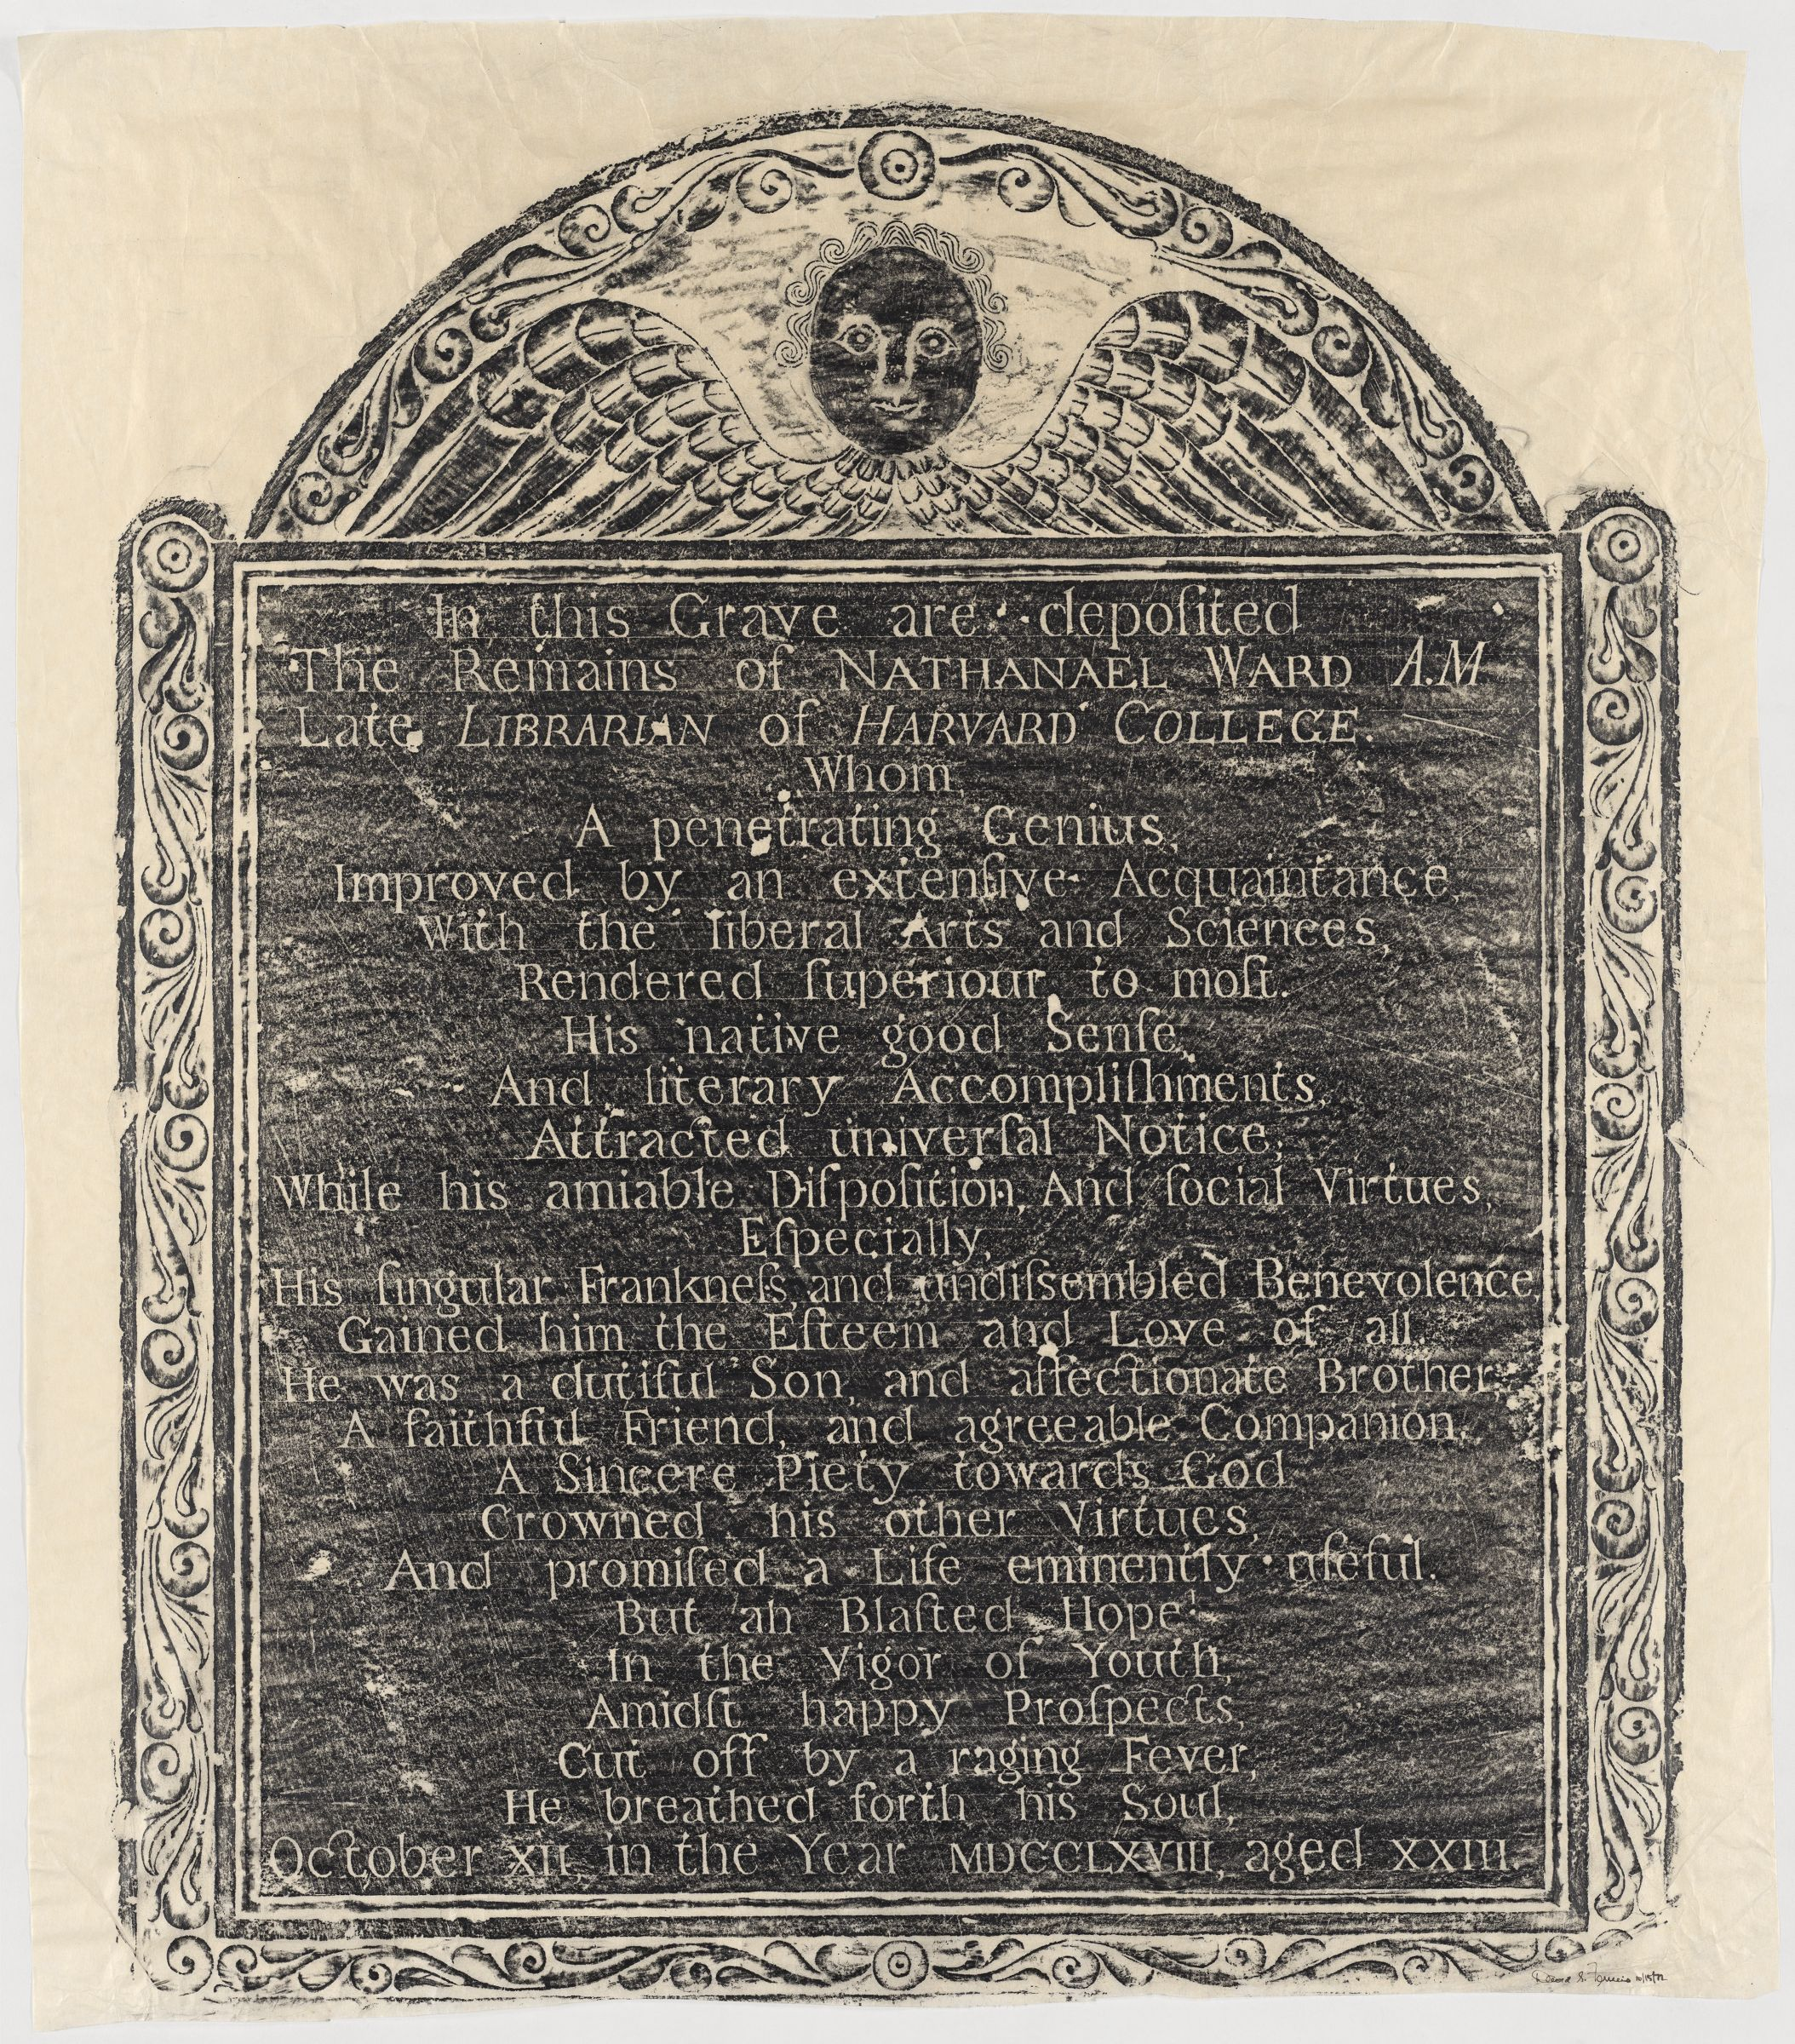 Rubbing of the gravestone of Harvard librarian Nathaniel Ward made by David S. Ferriero, October 15, 1972